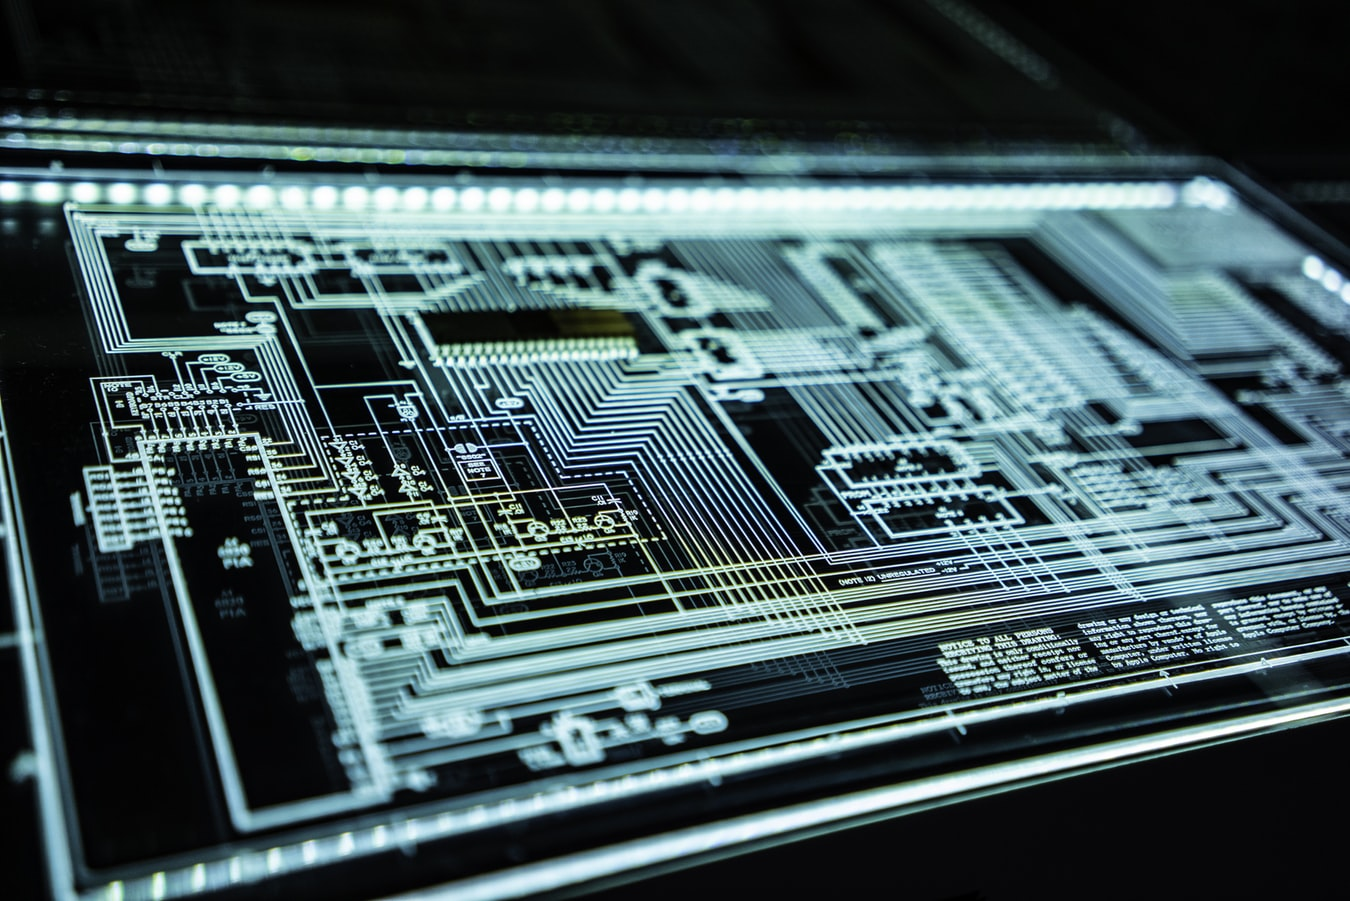 How quantum computing could beat climate change – The European Sting - Critical News & Insights on European Politics, Economy, Foreign Affairs, Business & Technology - europeansting.com